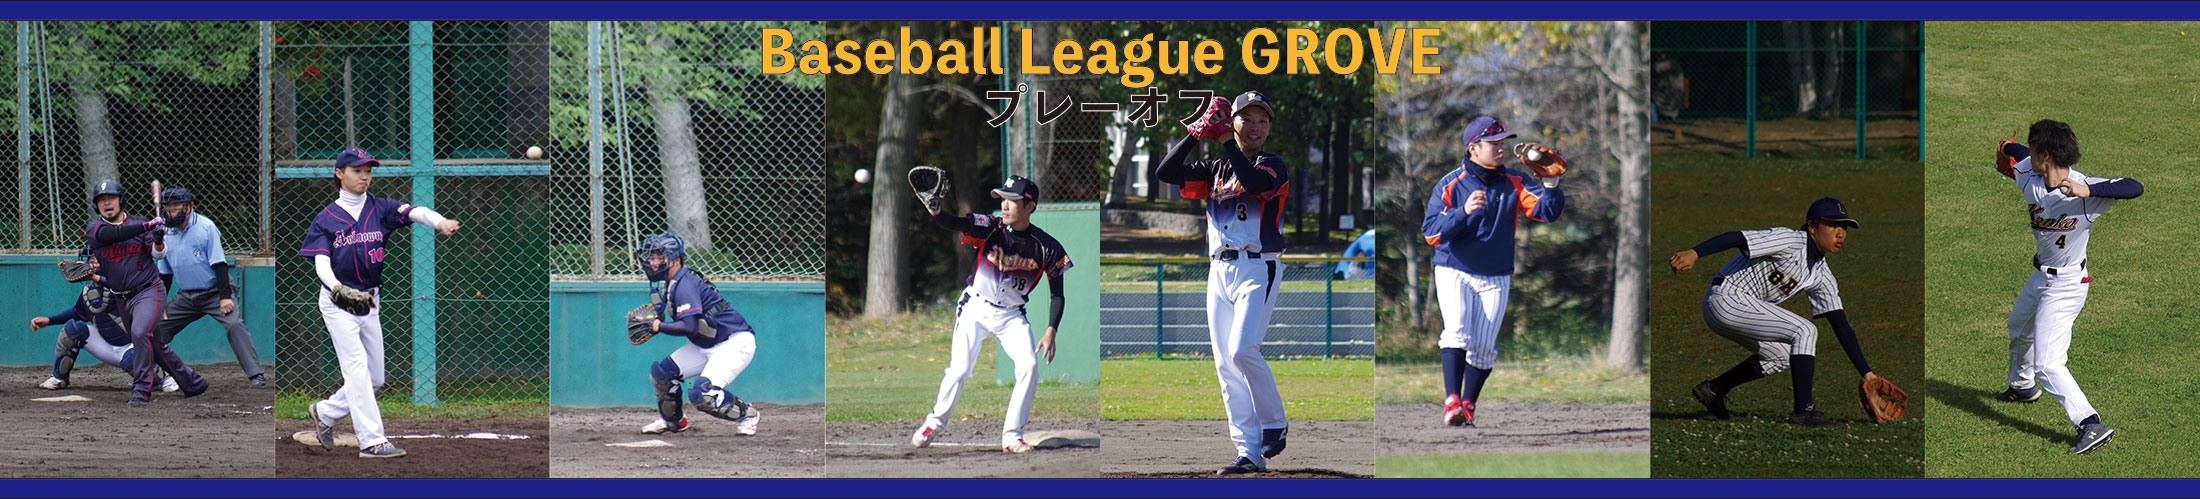 Baseball League GROVE